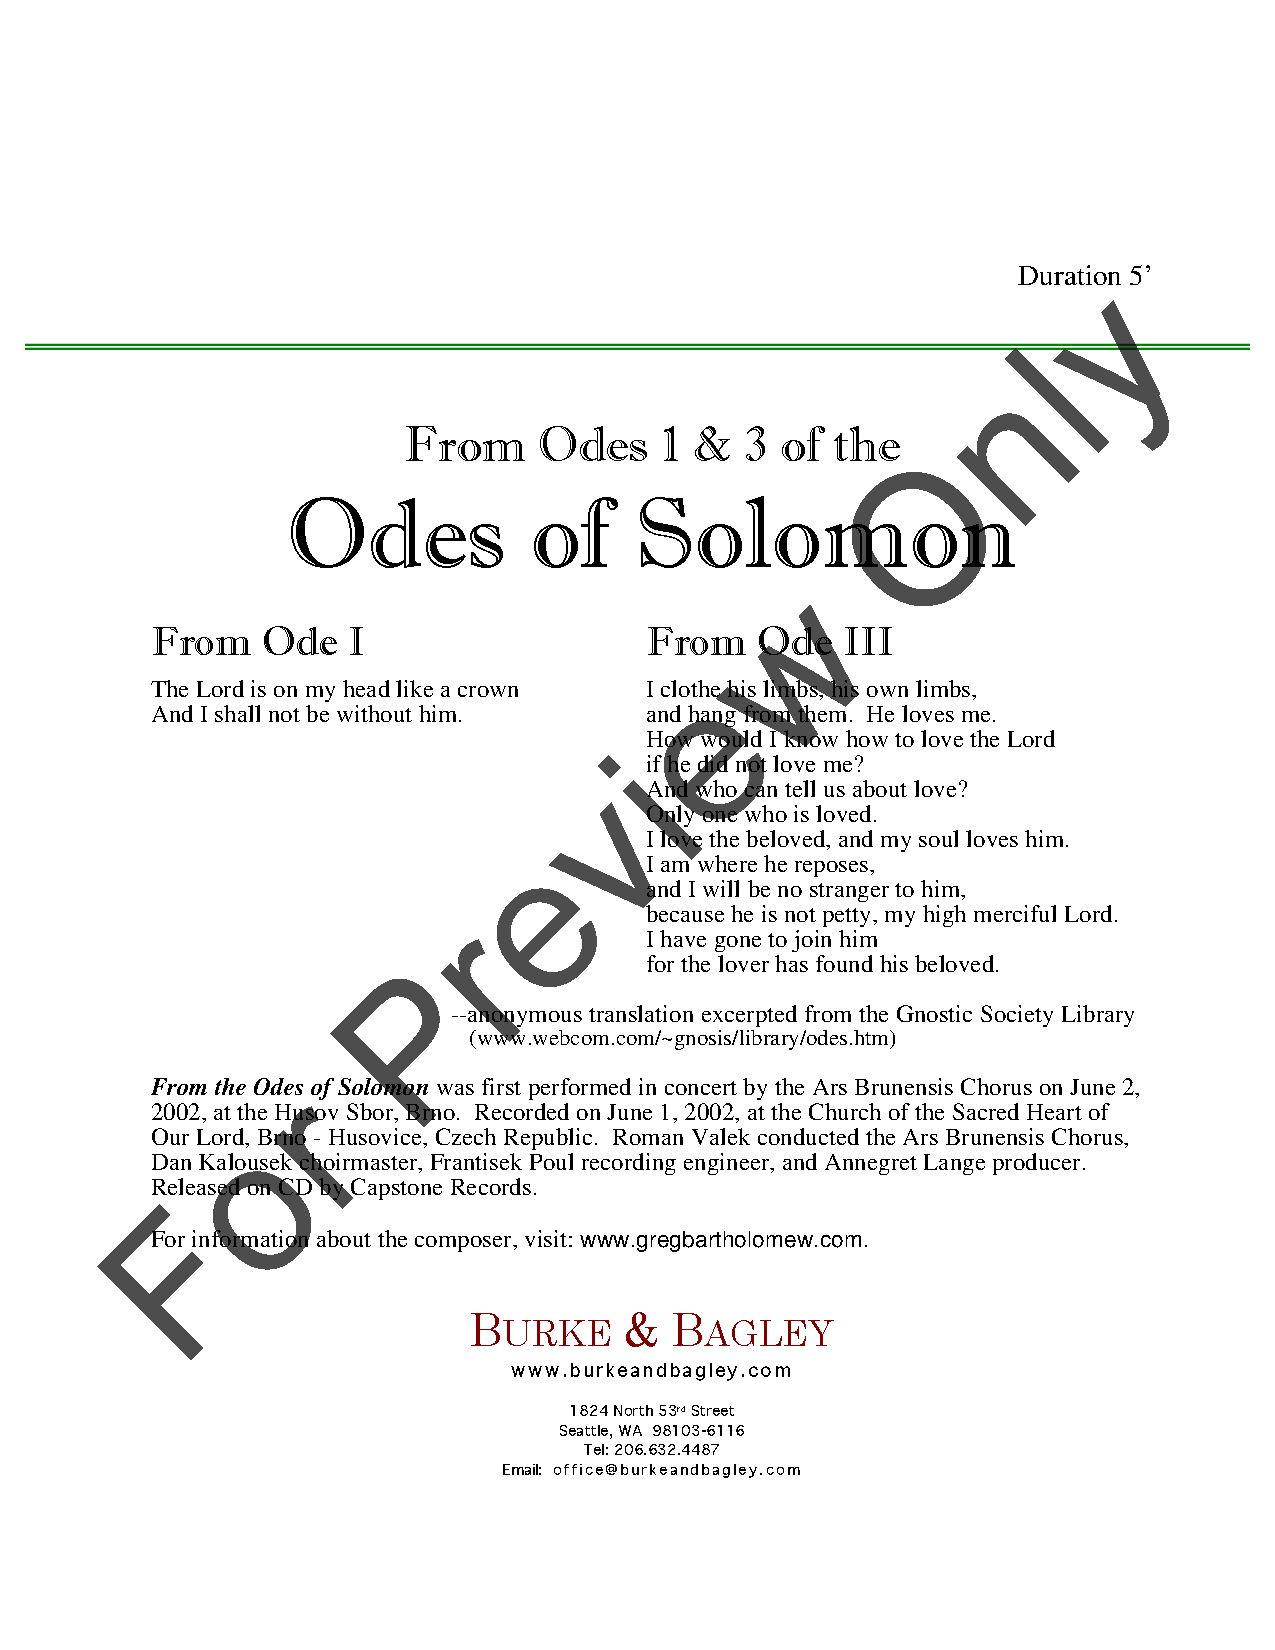 From Odes 1 & 3 of the Odes of Solomon Thumbnail